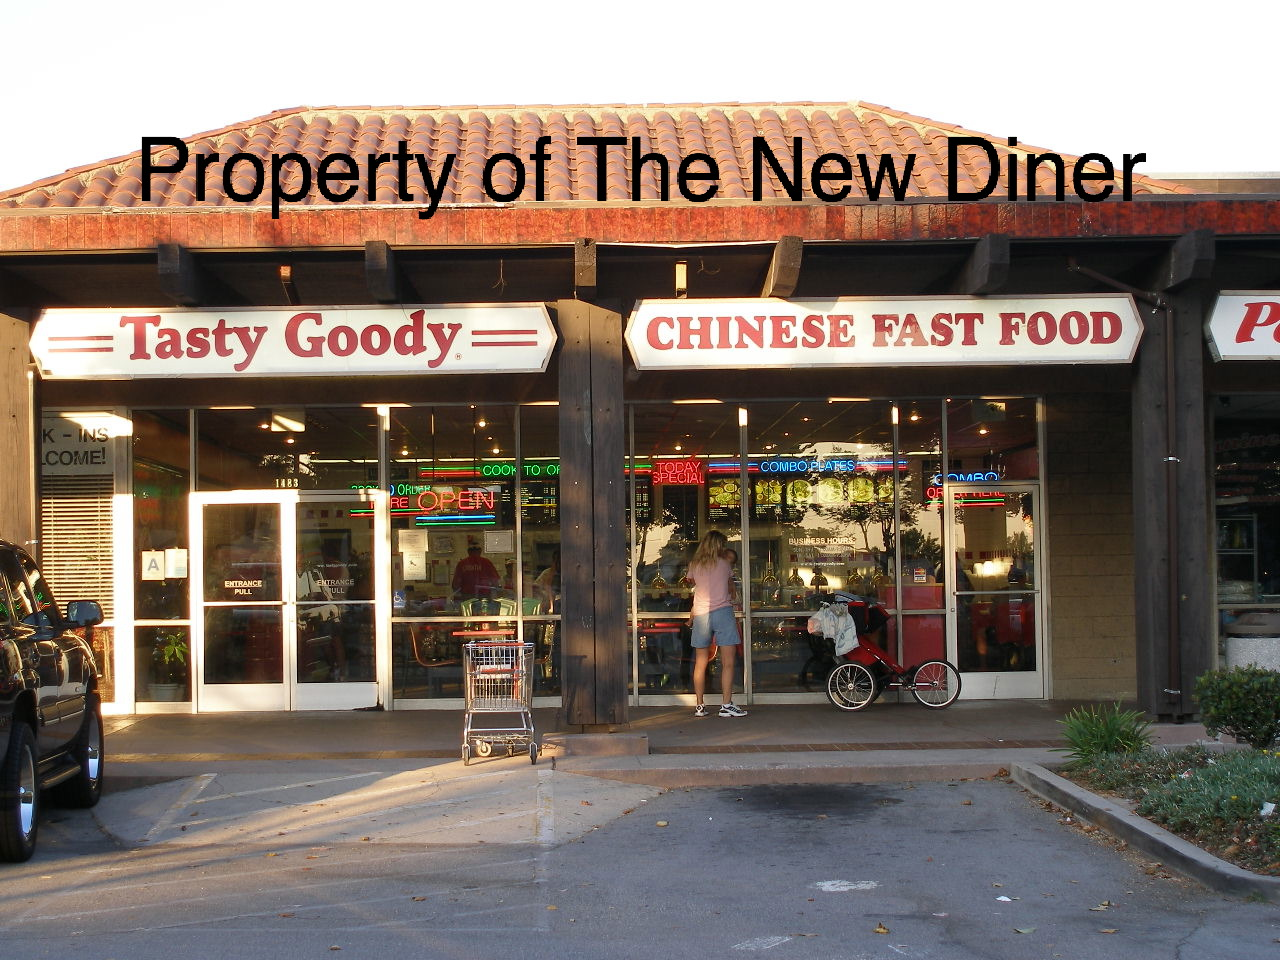 The New Diner: Tasty Goody